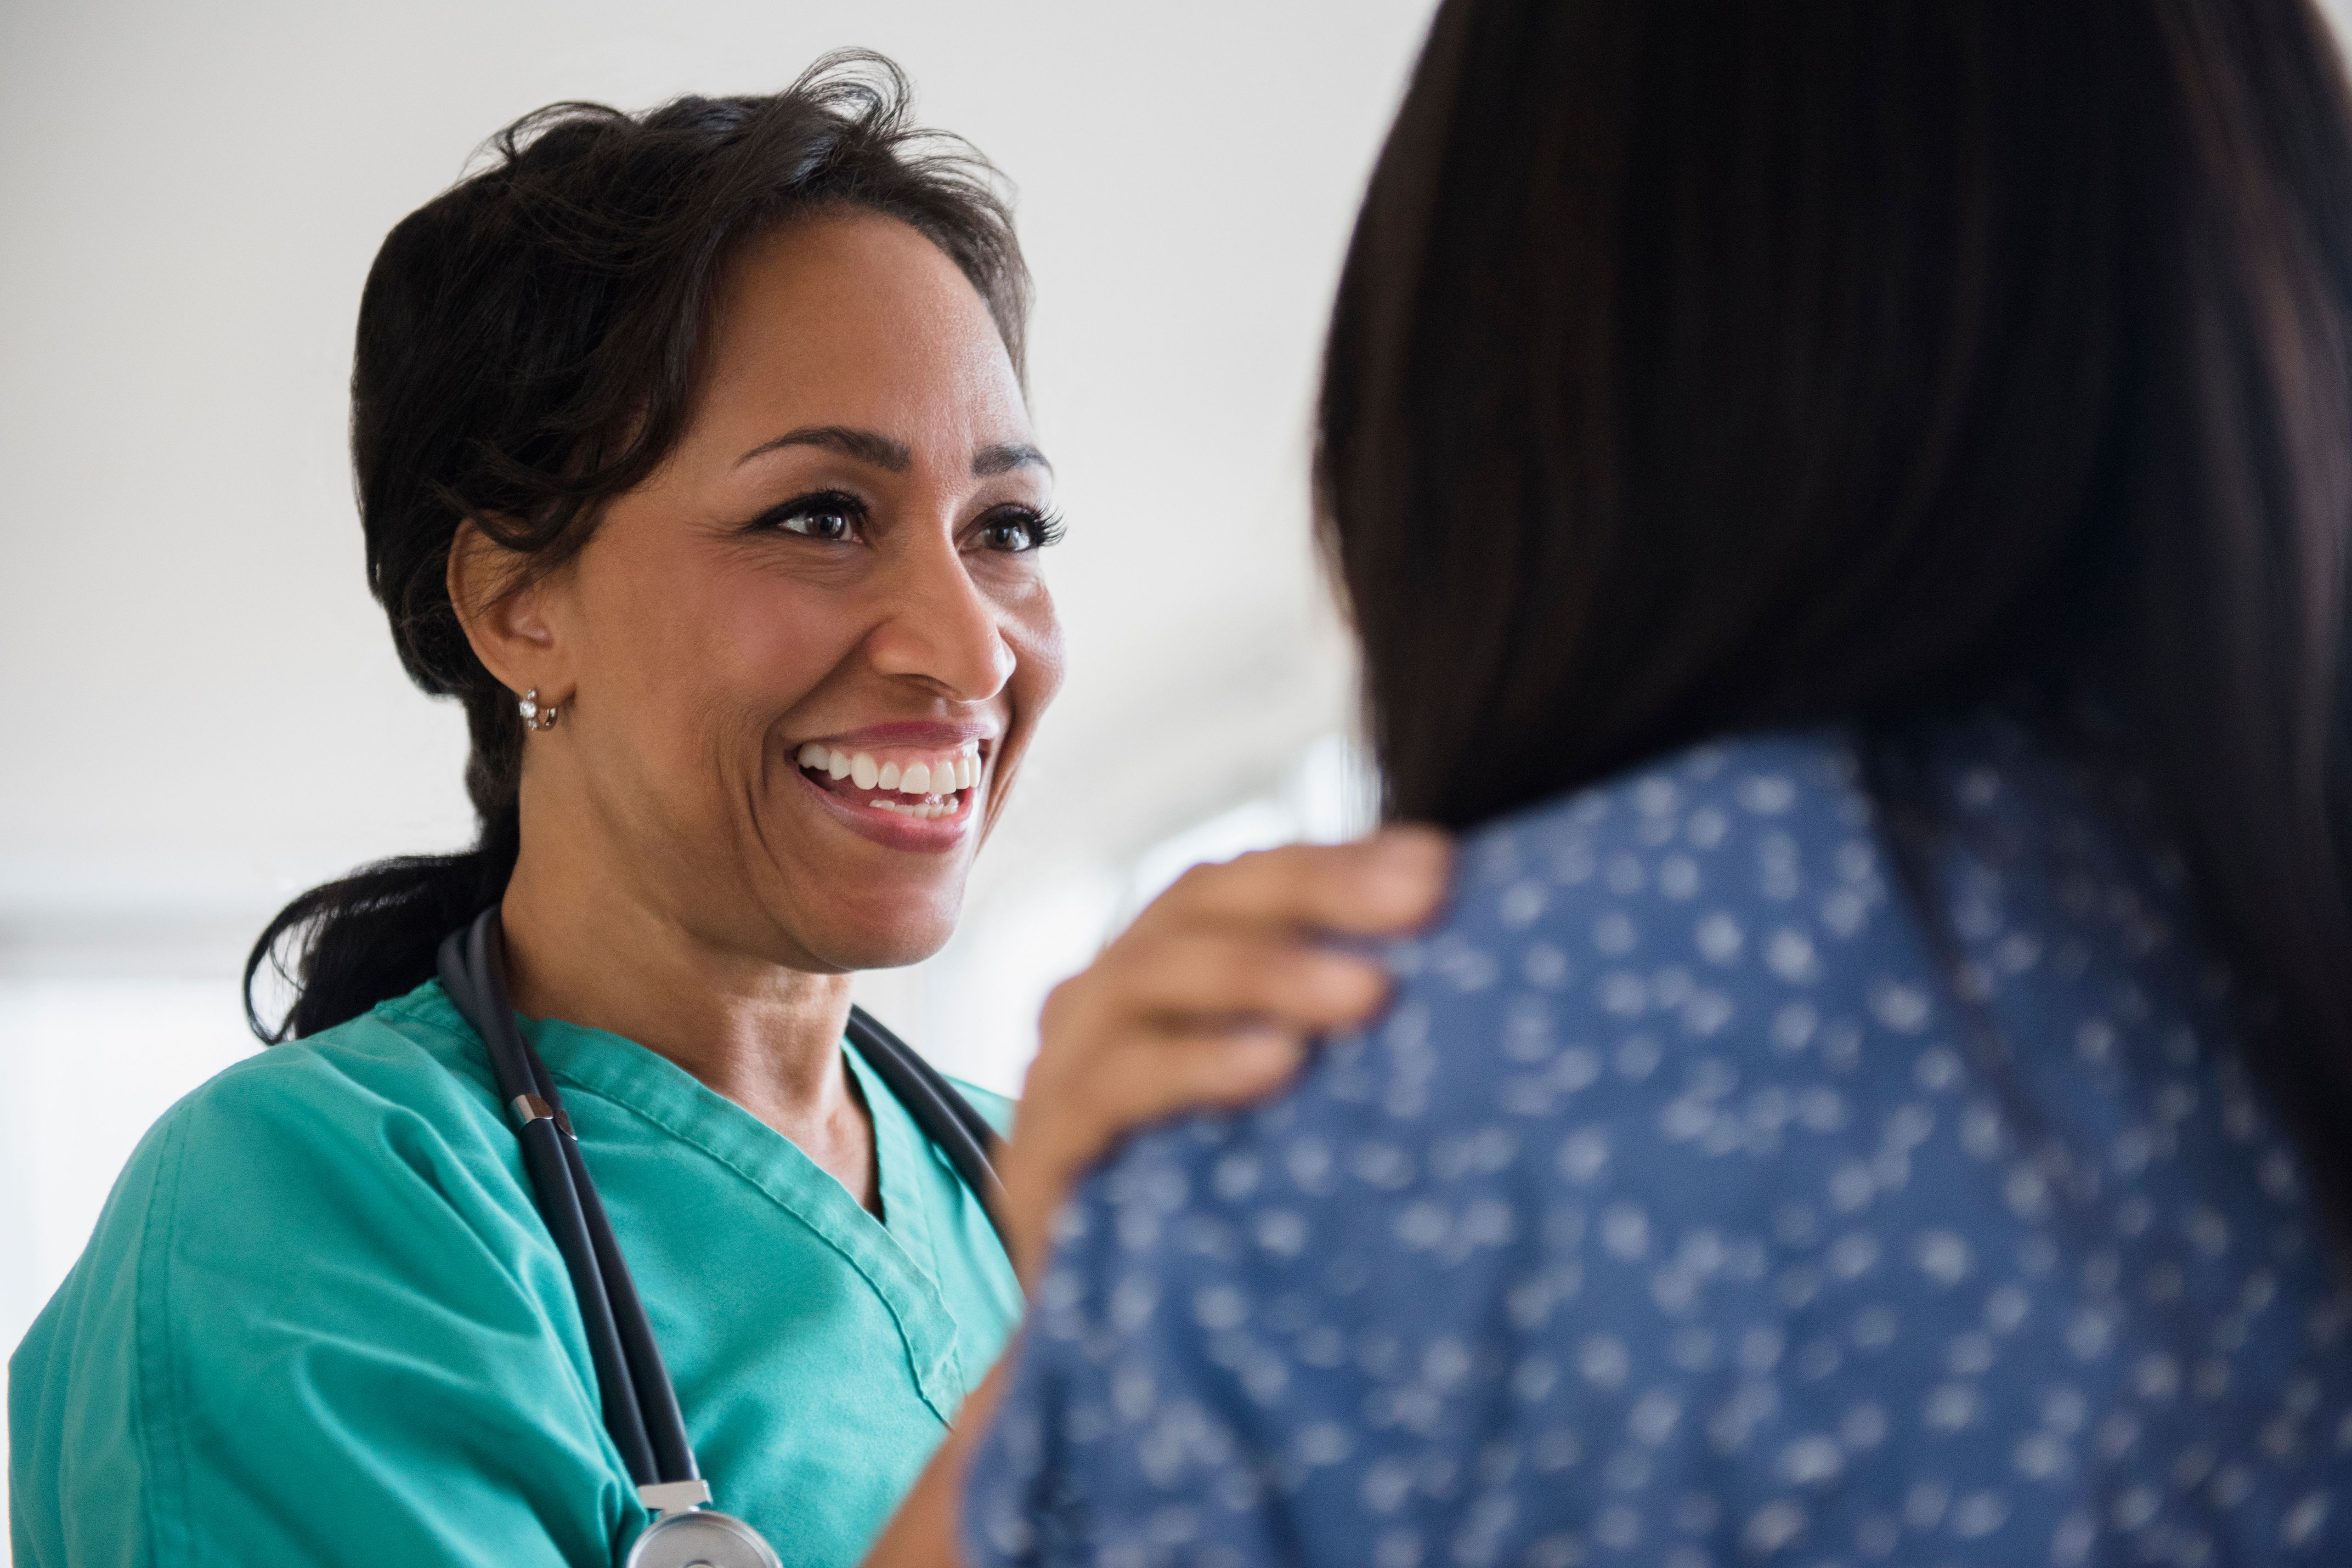 Smiling nurse wearing scrubs comforting a patient.